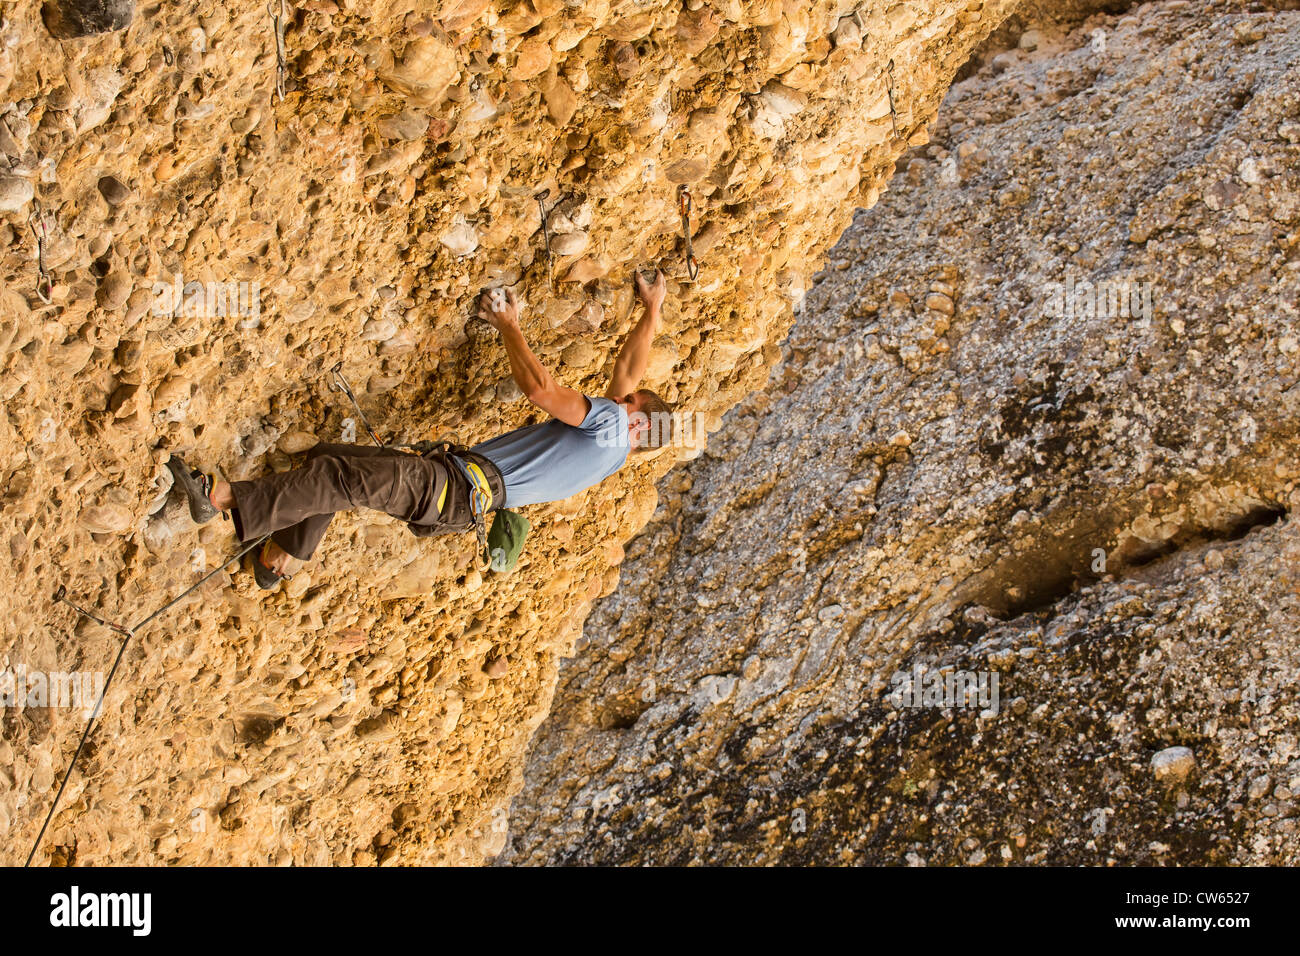 Man high on a rock wall attempting to maneuver around an overhang.  Summer time in the Utah mountains, sunny and Stock Photo